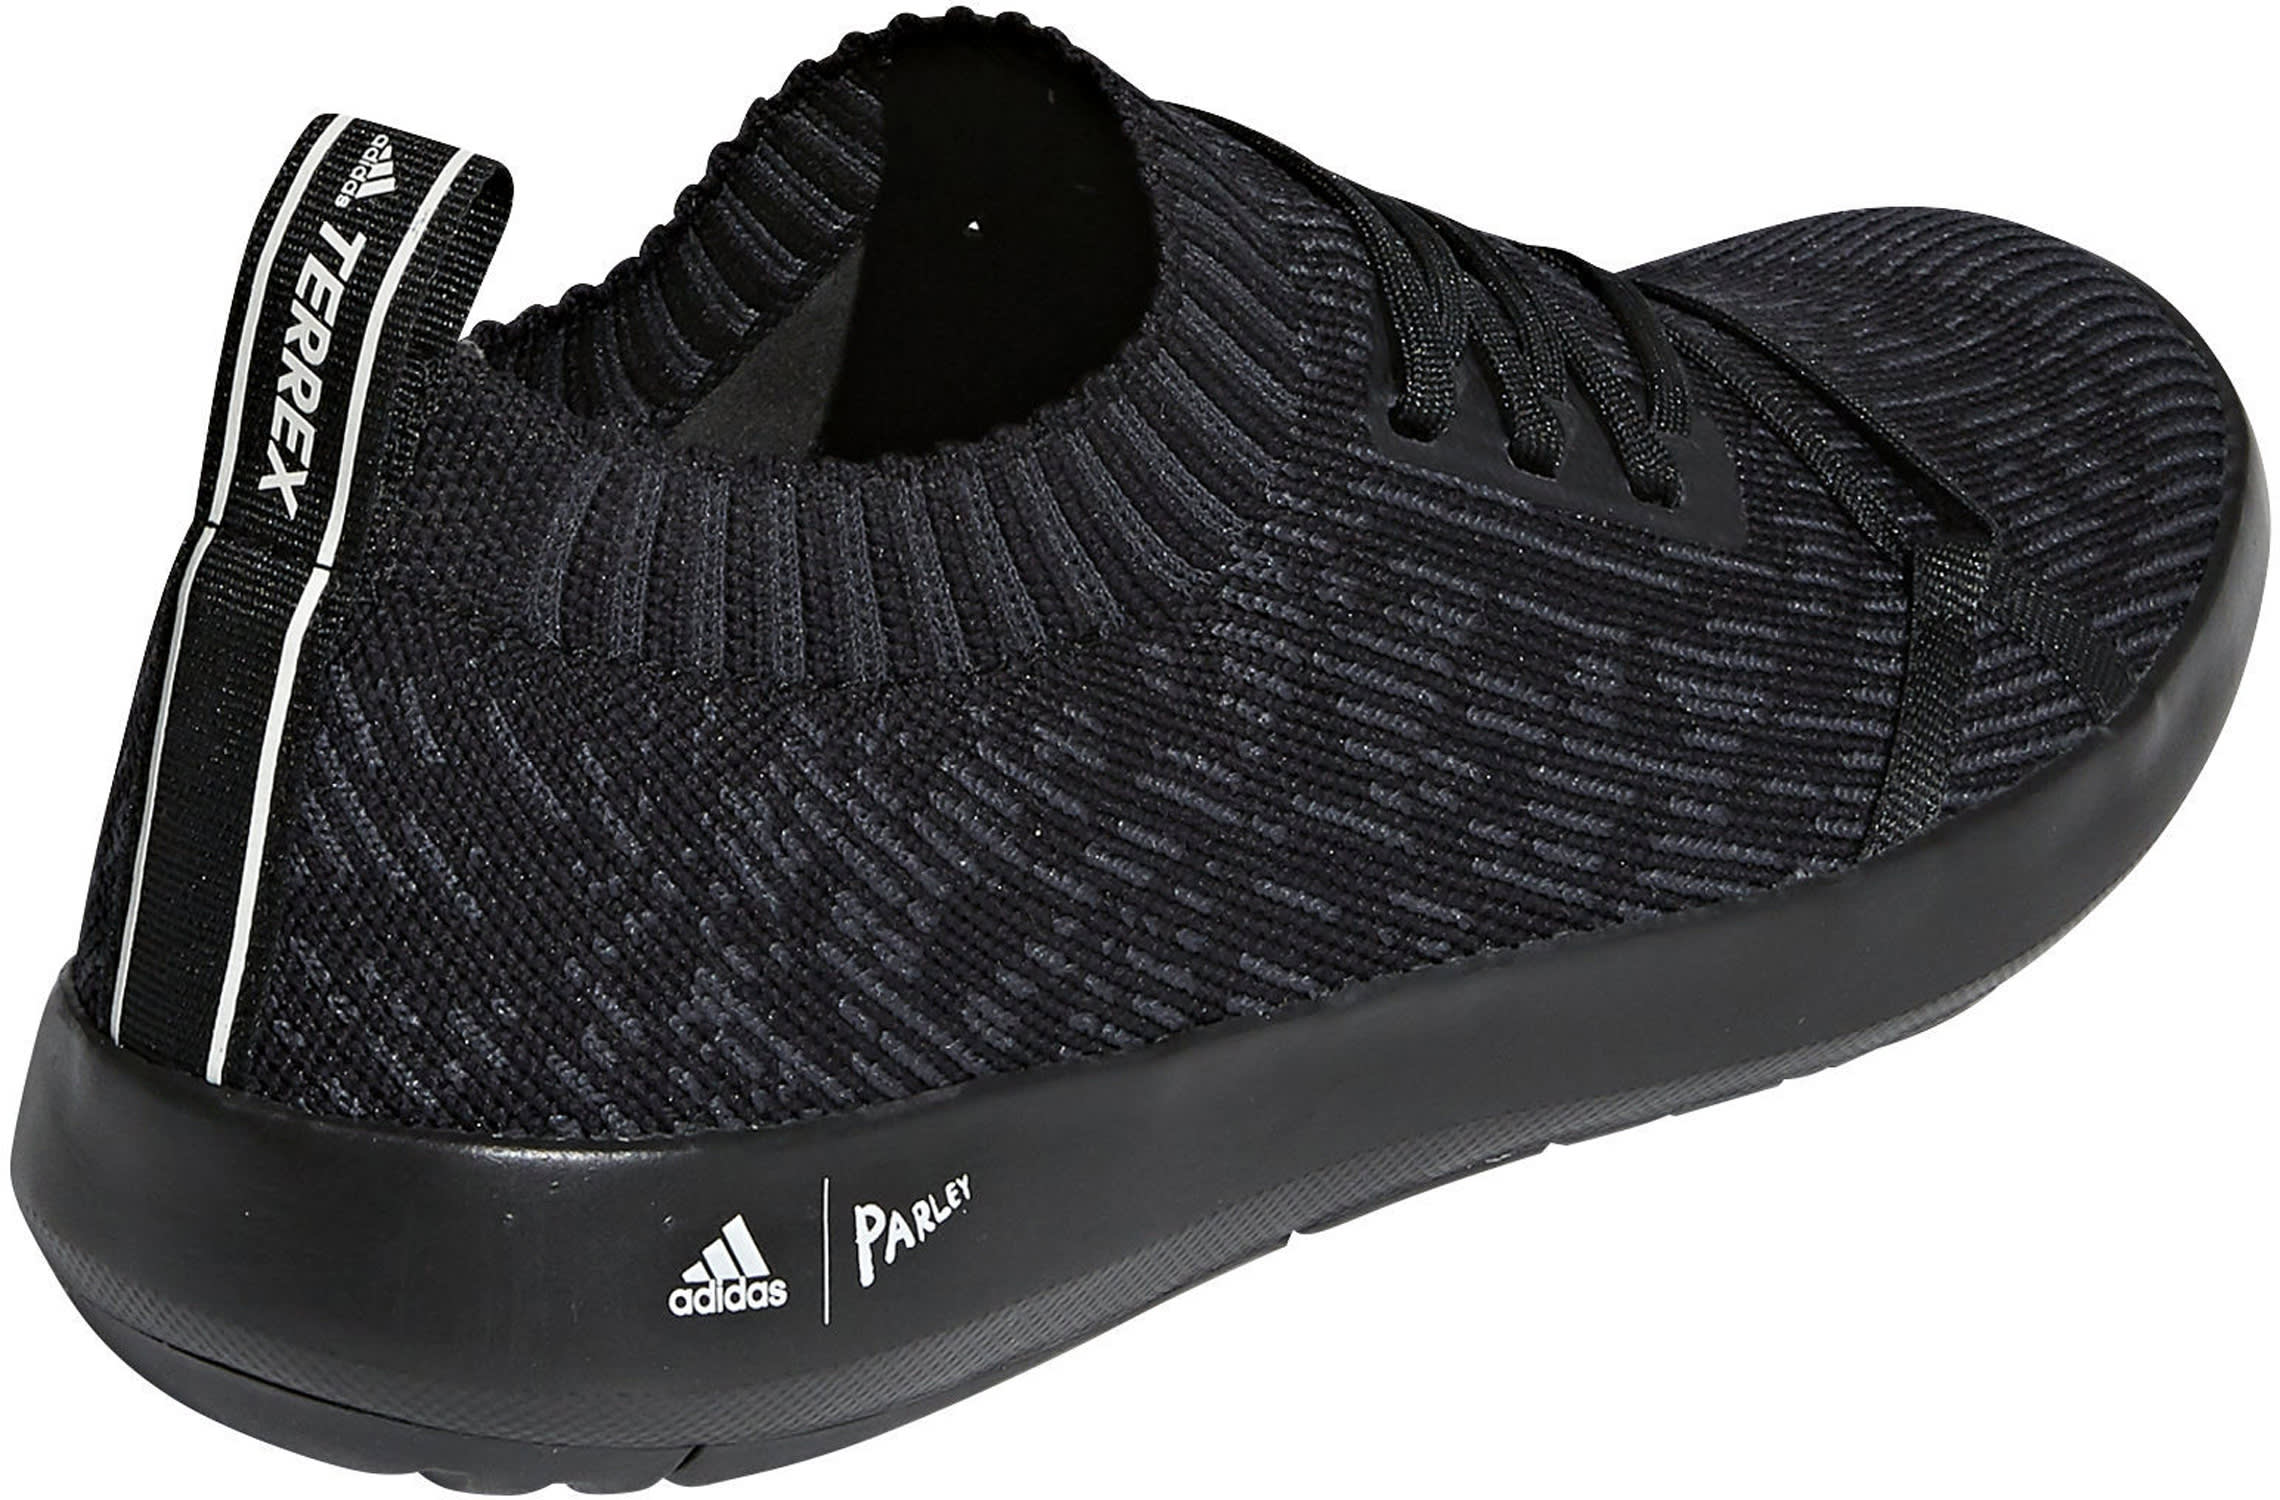 Adidas Terrex Boat DLX Parley Water Shoes